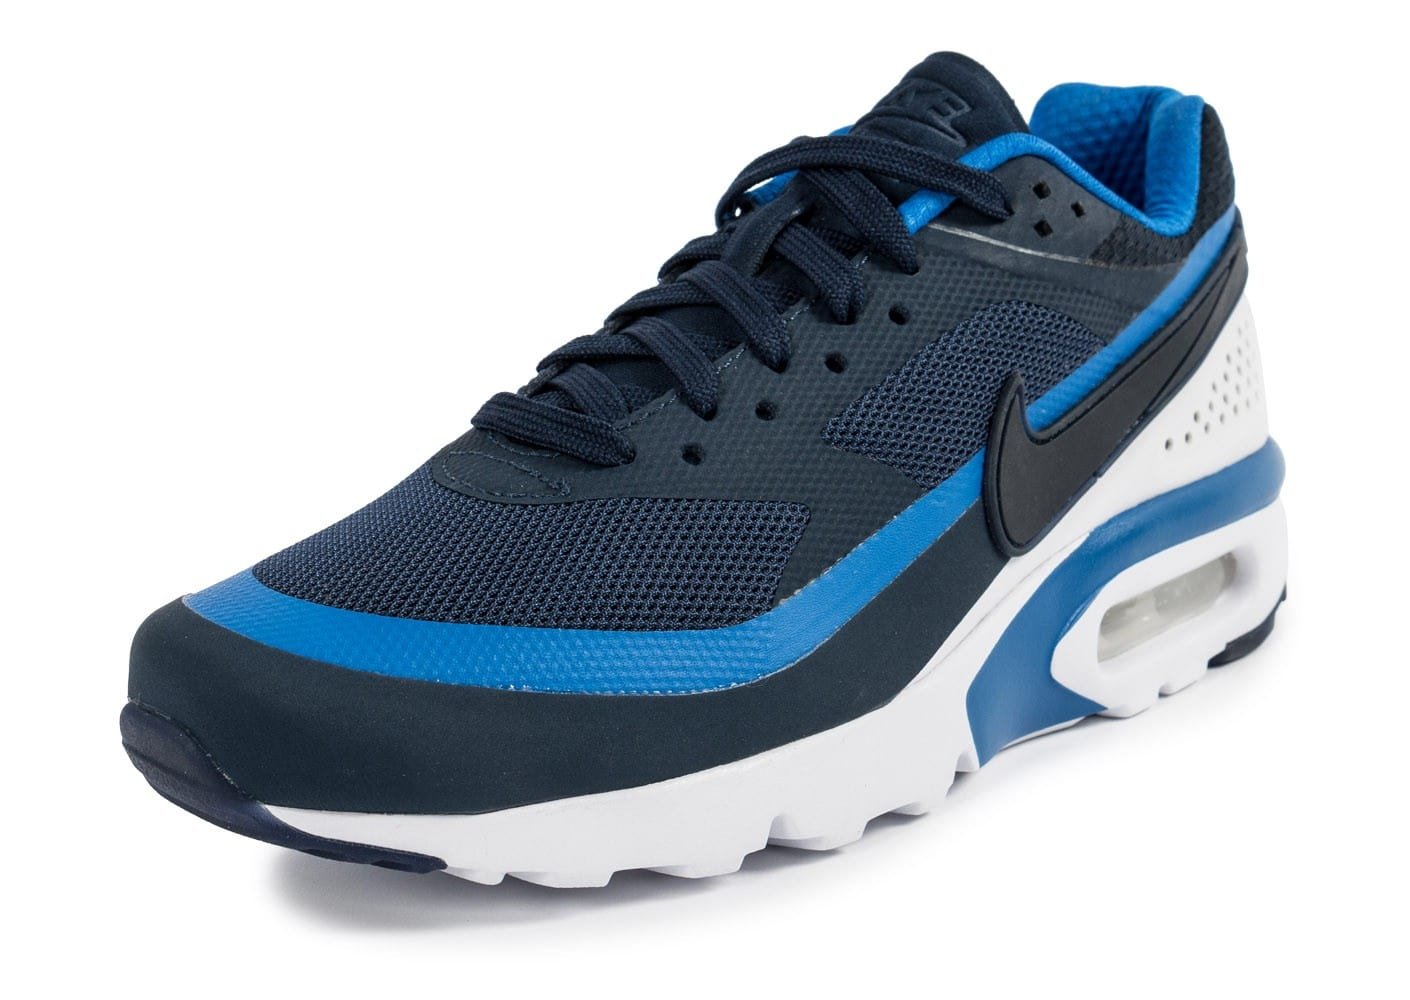 nike air max bw ultra bleu marine chaussures homme chausport. Black Bedroom Furniture Sets. Home Design Ideas